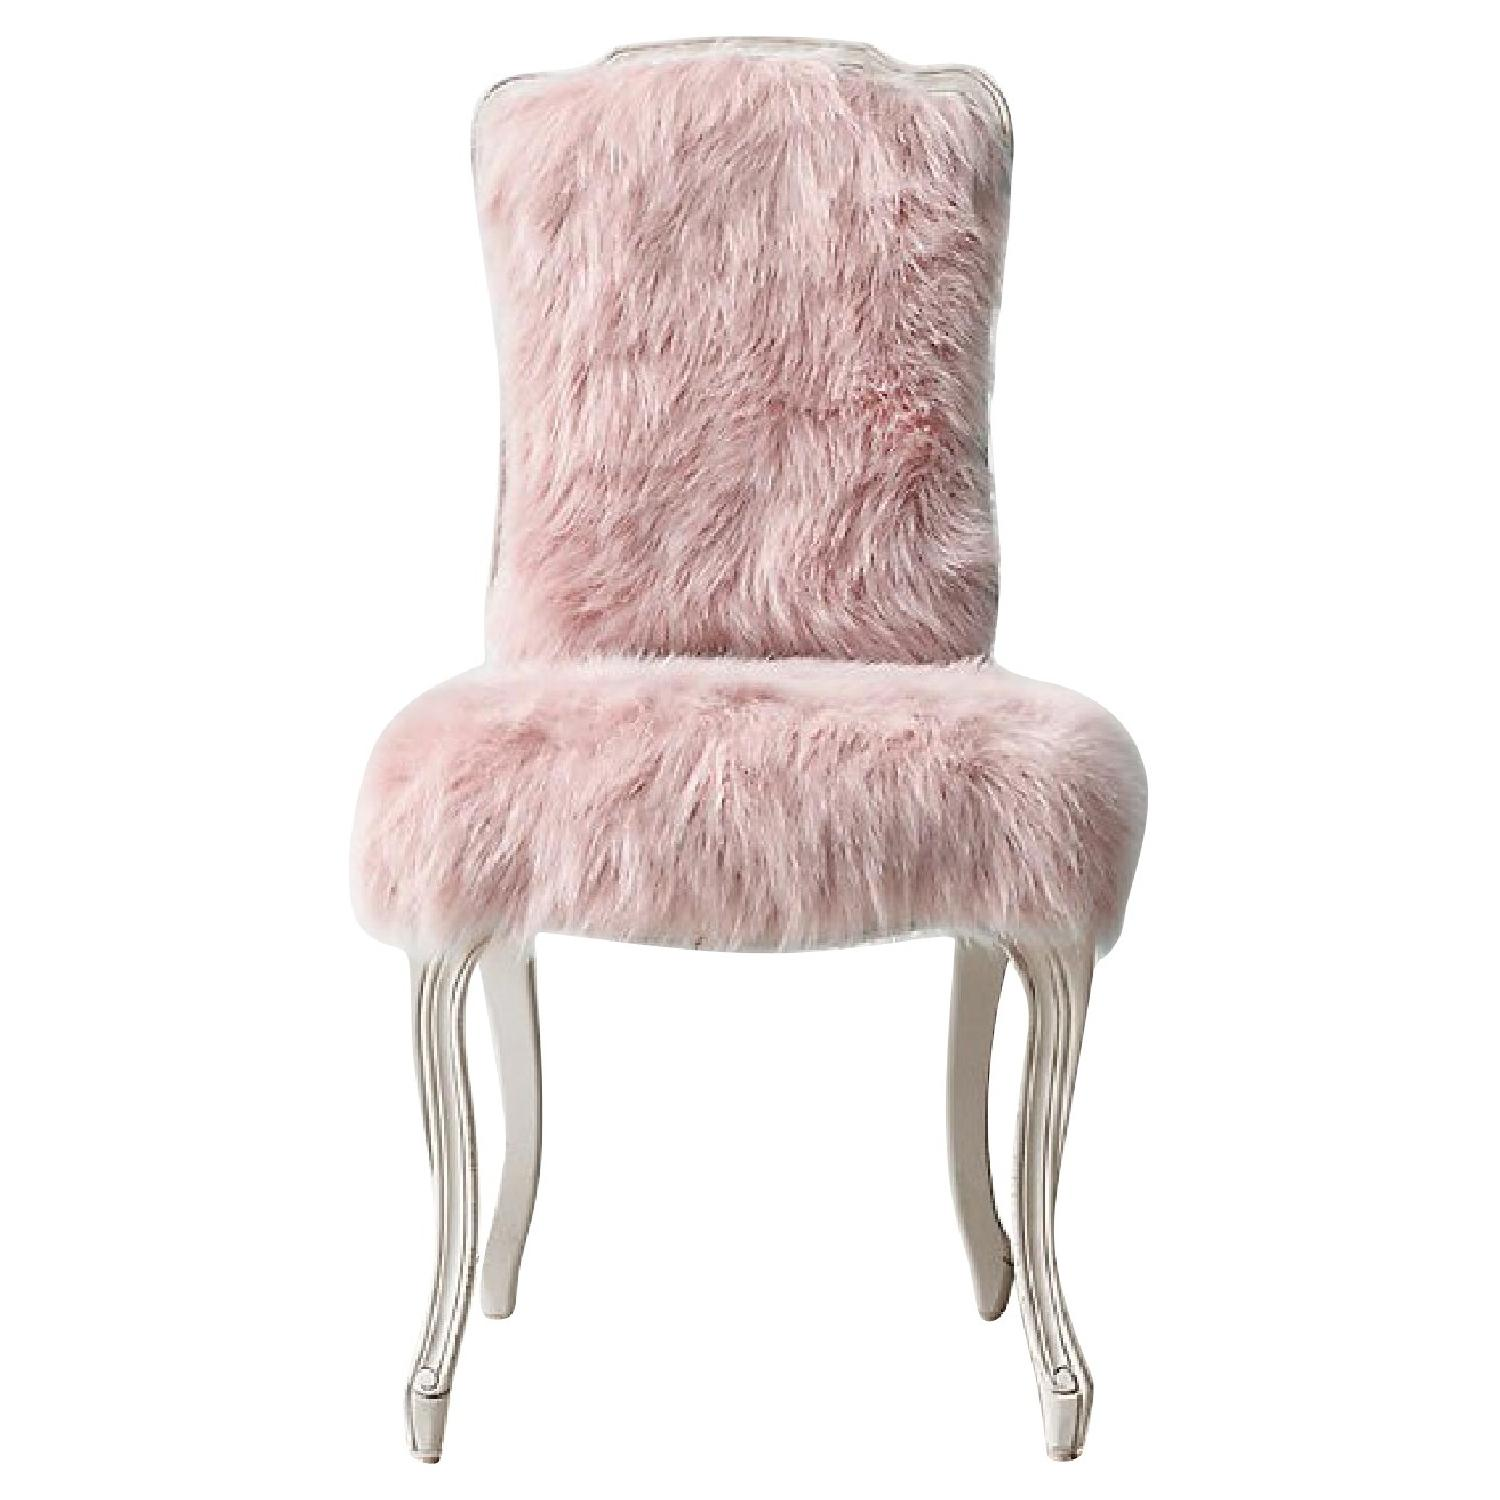 Restoration Hardware Sophie Kashmir Faux Fur Desk Chair - AptDeco on desk chair, fur chair for teen room, justice zebra chair, fur chair covers, fur sewing machine, fur butterfly chair, faux fur chair, fur phone chair, fur saucer chair, fuzzy chair, fur leather, fur stool, extra large chair, fur bed, man in chair, fur chairs for tween girls, fur travel chair, fur couch, fur computer chair, fur lounge chair,